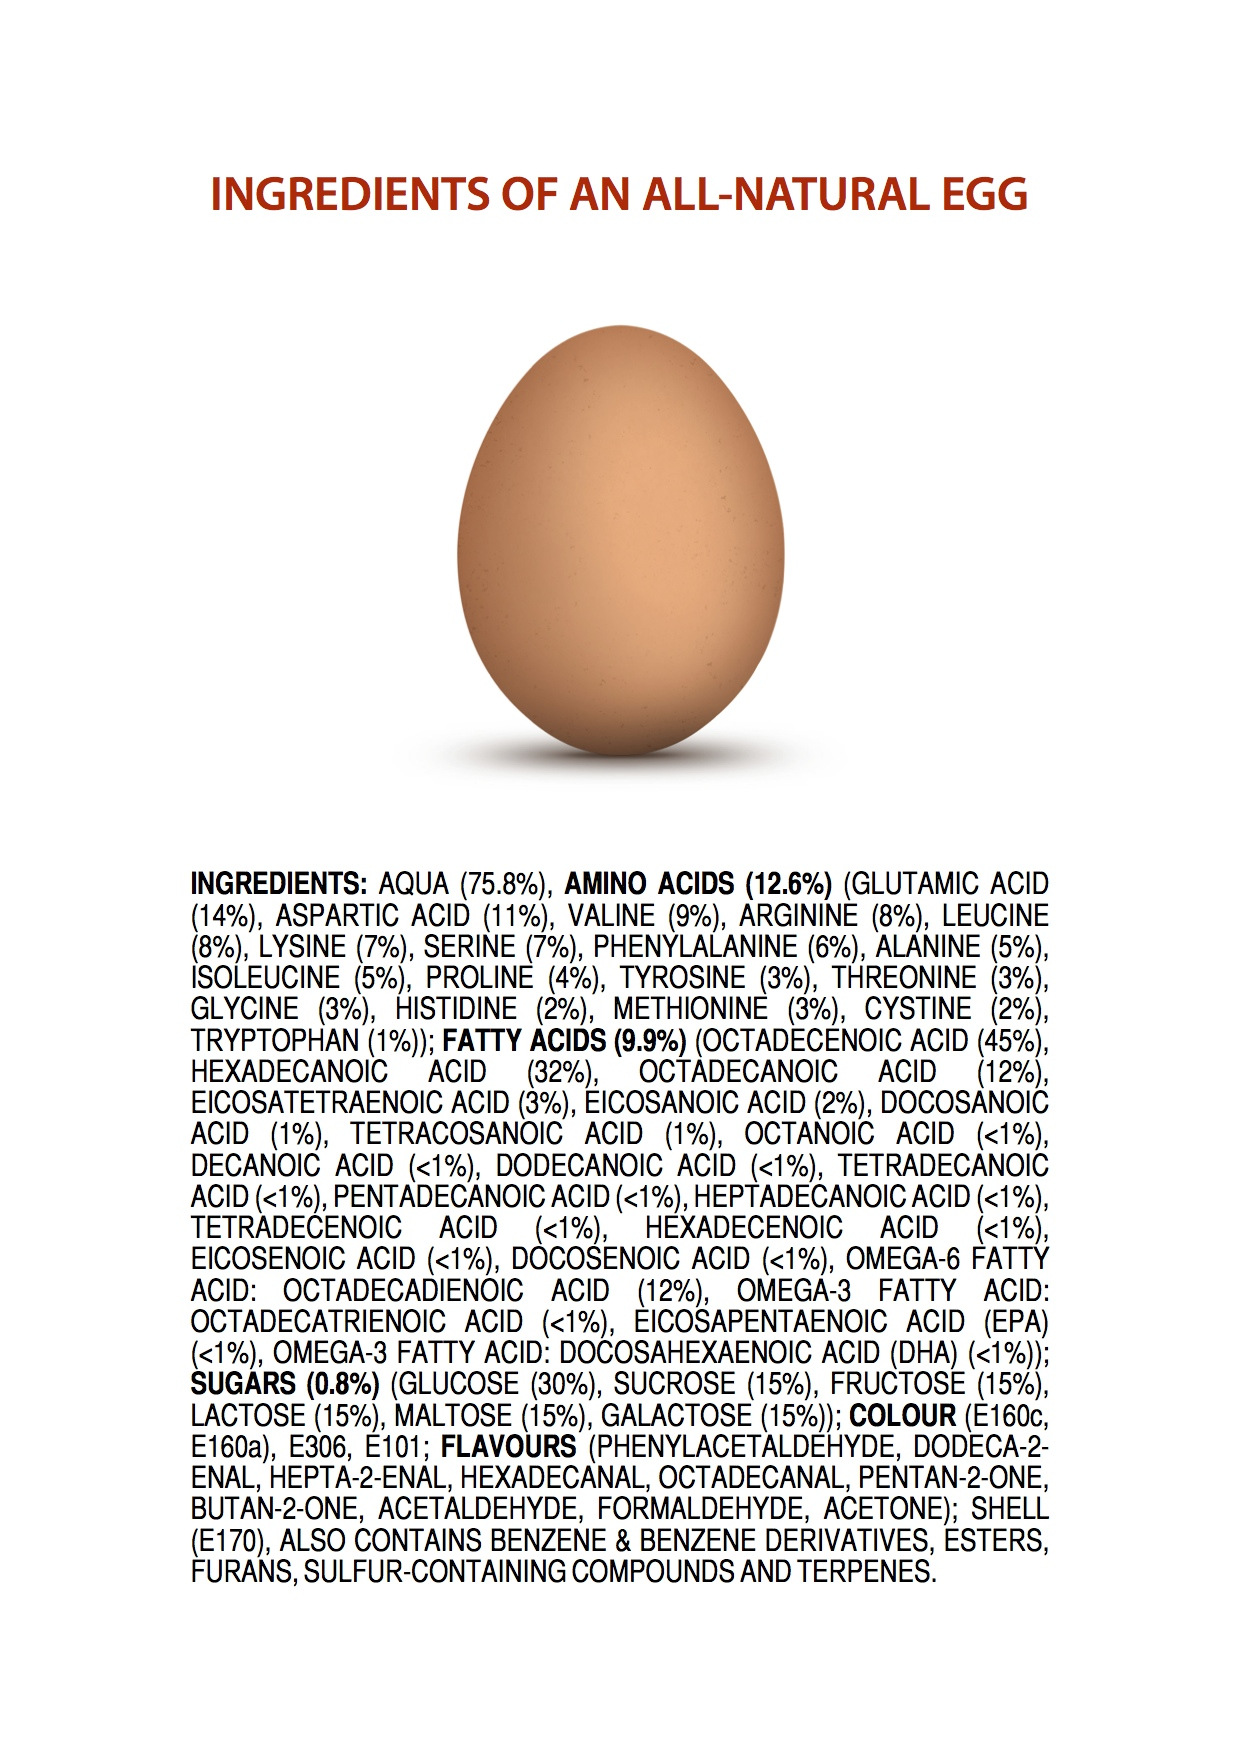 Chemicals in All-Natural Egg